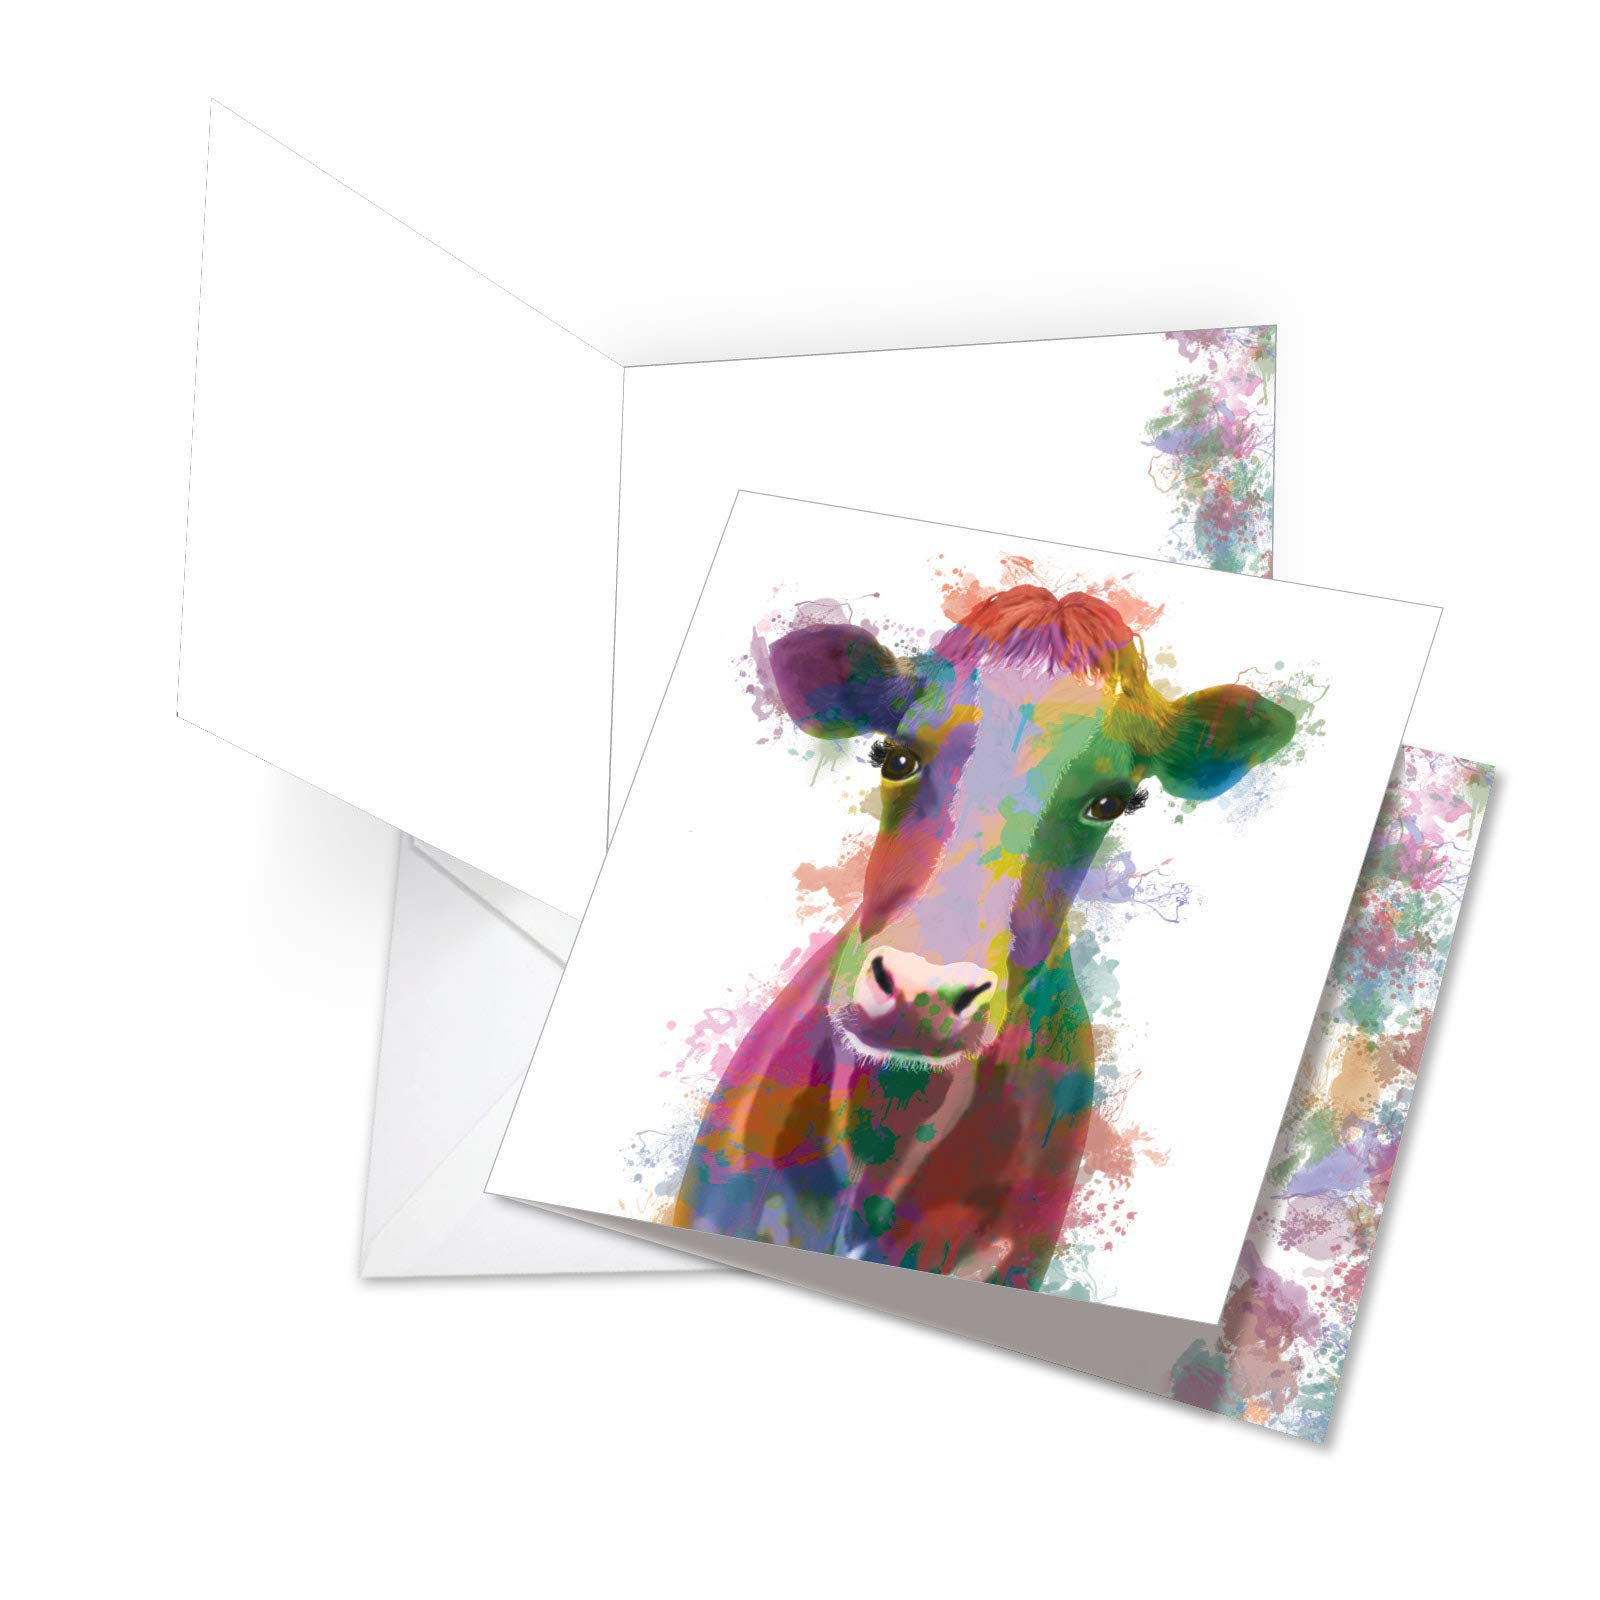 Funky Rainbow Wildlife Thank You - Big Thank You Card with Envelope (Large 8.25 x 9.75 Inch) - Colorful Watercolor Animal Appreciation Greeting Notecard - Gratitude, Thanks Stationery JQ4948ETYG